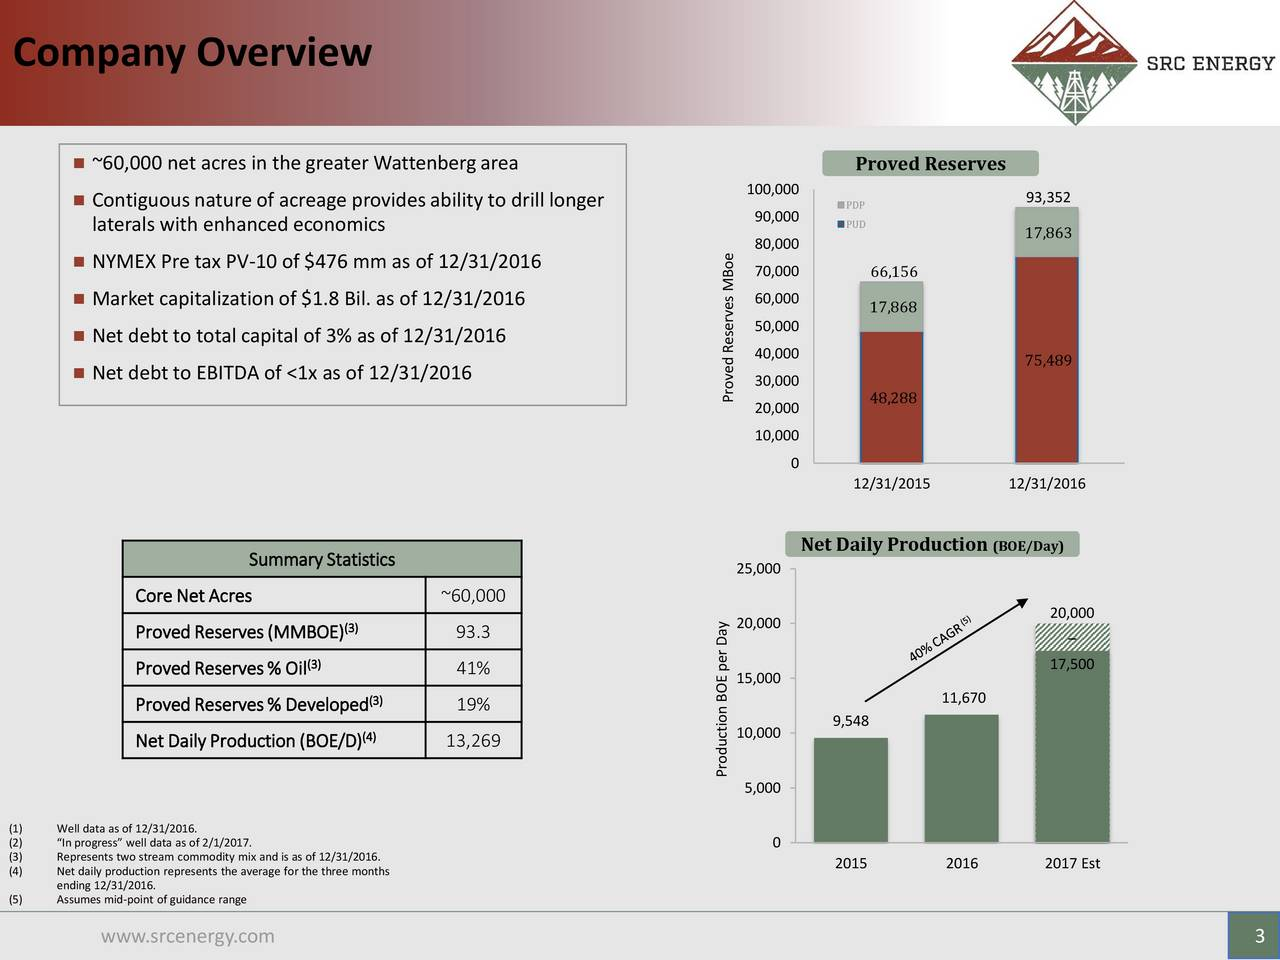 ~60,000 net acres in the greater Wattenbergarea Proved Reserves Contiguousnature of acreage provides ability to drill longer 100,000 93,352 90,000 PDP laterals with enhanced economics PUD 17,863 80,000 NYMEX Pre tax PV-10 of $476 mm as of 12/31/2016 70,000 66,156 Market capitalization of $1.8 Bil. as of 12/31/2016 MBo60,000 17,868 50,000 Net debt to total capital of 3% as of 12/31/2016 40,000 75,489 Net debt to EBITDA of <1x as of 12/31/2016 30,000 Proved Reserves 48,288 20,000 10,000 0 12/31/2015 12/31/2016 Net Daily Production (BOE/Day) SummaryStatistics 25,000 CoreNetAcres ~60,000 20,000 (3) 20,000 ProvedReserves(MMBOE) 93.3 (3) 17,500 ProvedReserves% Oil 41% 15,000 11,670 ProvedReserves% Developed (3) 19% 9,548 NetDailyProduction(BOE/D) (4) 13,269 10,000 Production BOE per Day 5,000 (1) Well data as of 12/31/2016. (2) In progress well data as of 2/1/2017. 0 (3) Represents two stream commodity mix and is as of 12/31/2016. 2015 2016 2017 Est (4) Net daily production represents the average for the three months ending 12/31/2016. (5) Assumes mid-point of guidance range www.srcenergy.com 3